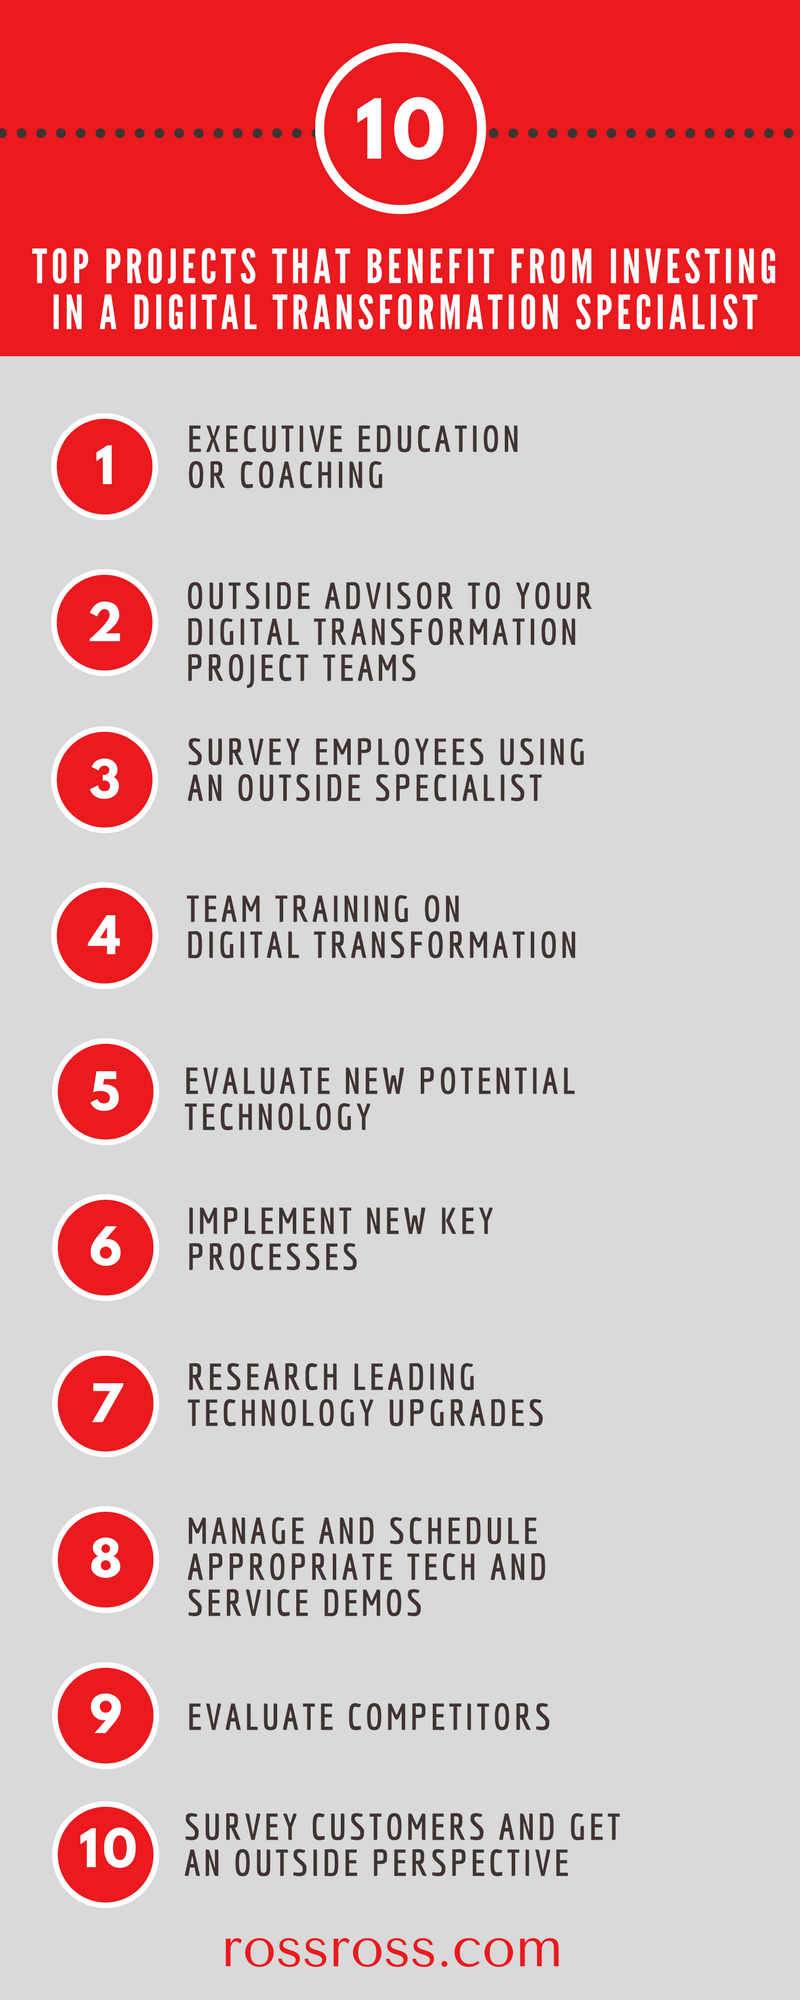 Contact us  for more information or to help you or your team digitally transform your organization.